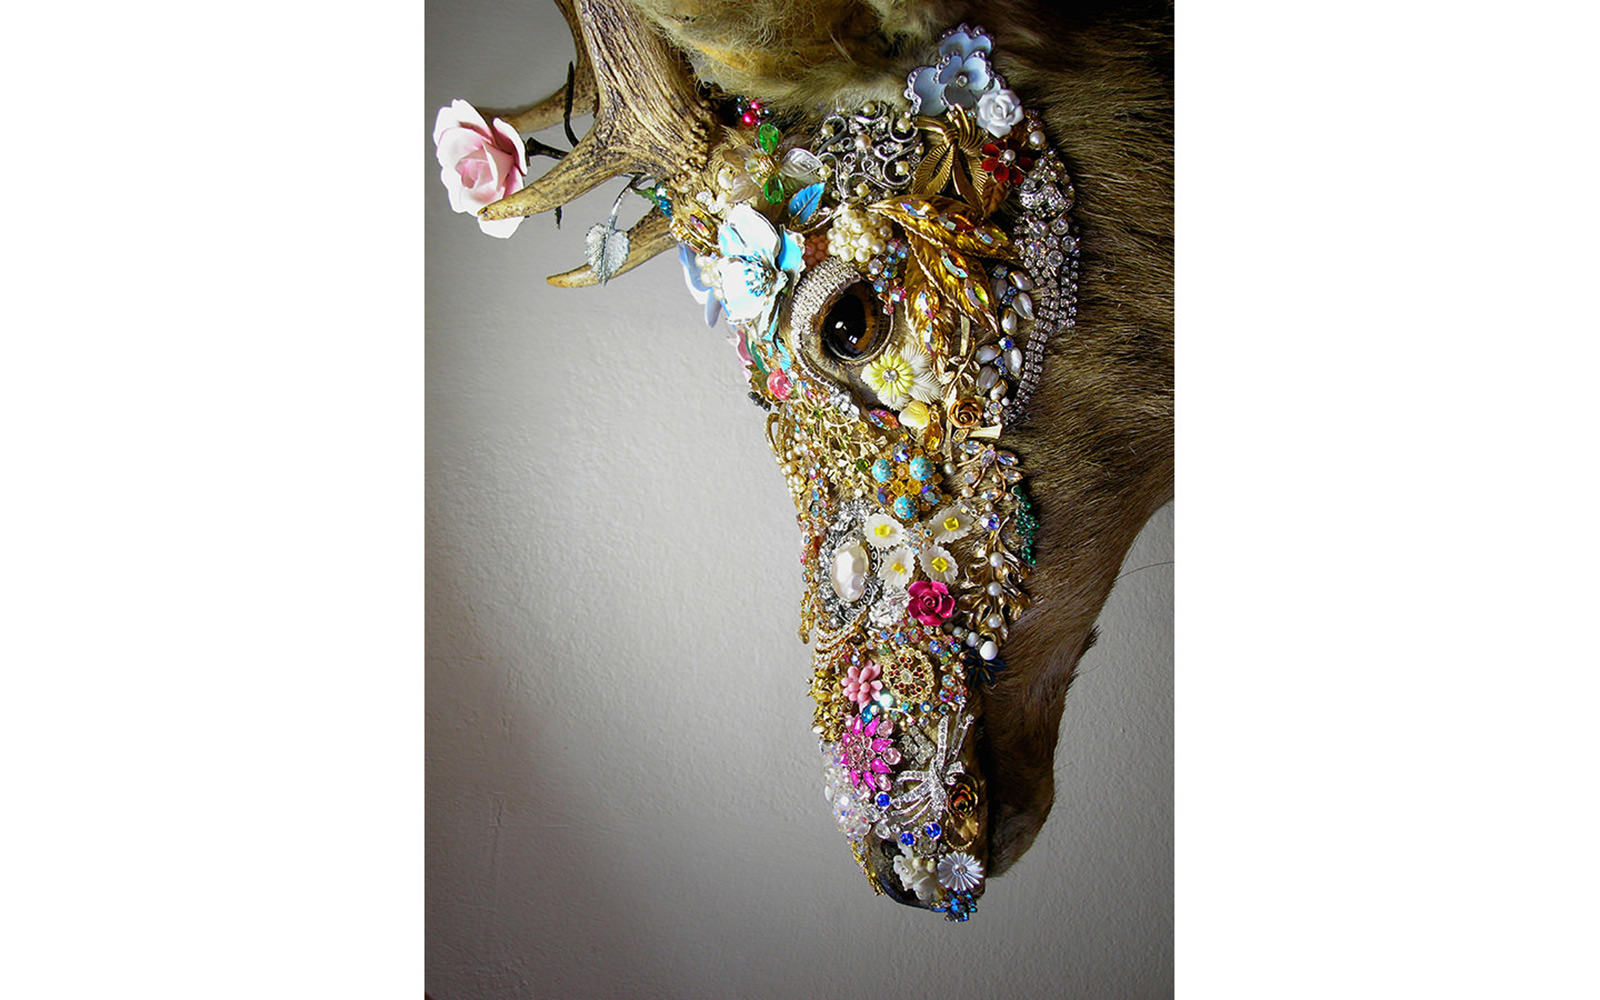 Angela Singer  Unexplained Recovery (Dead Eyed series) , 2010 Recycled vintage taxidermy stag, gems, mixed media 810 x 512 x 421 mm [Private collection]   _______